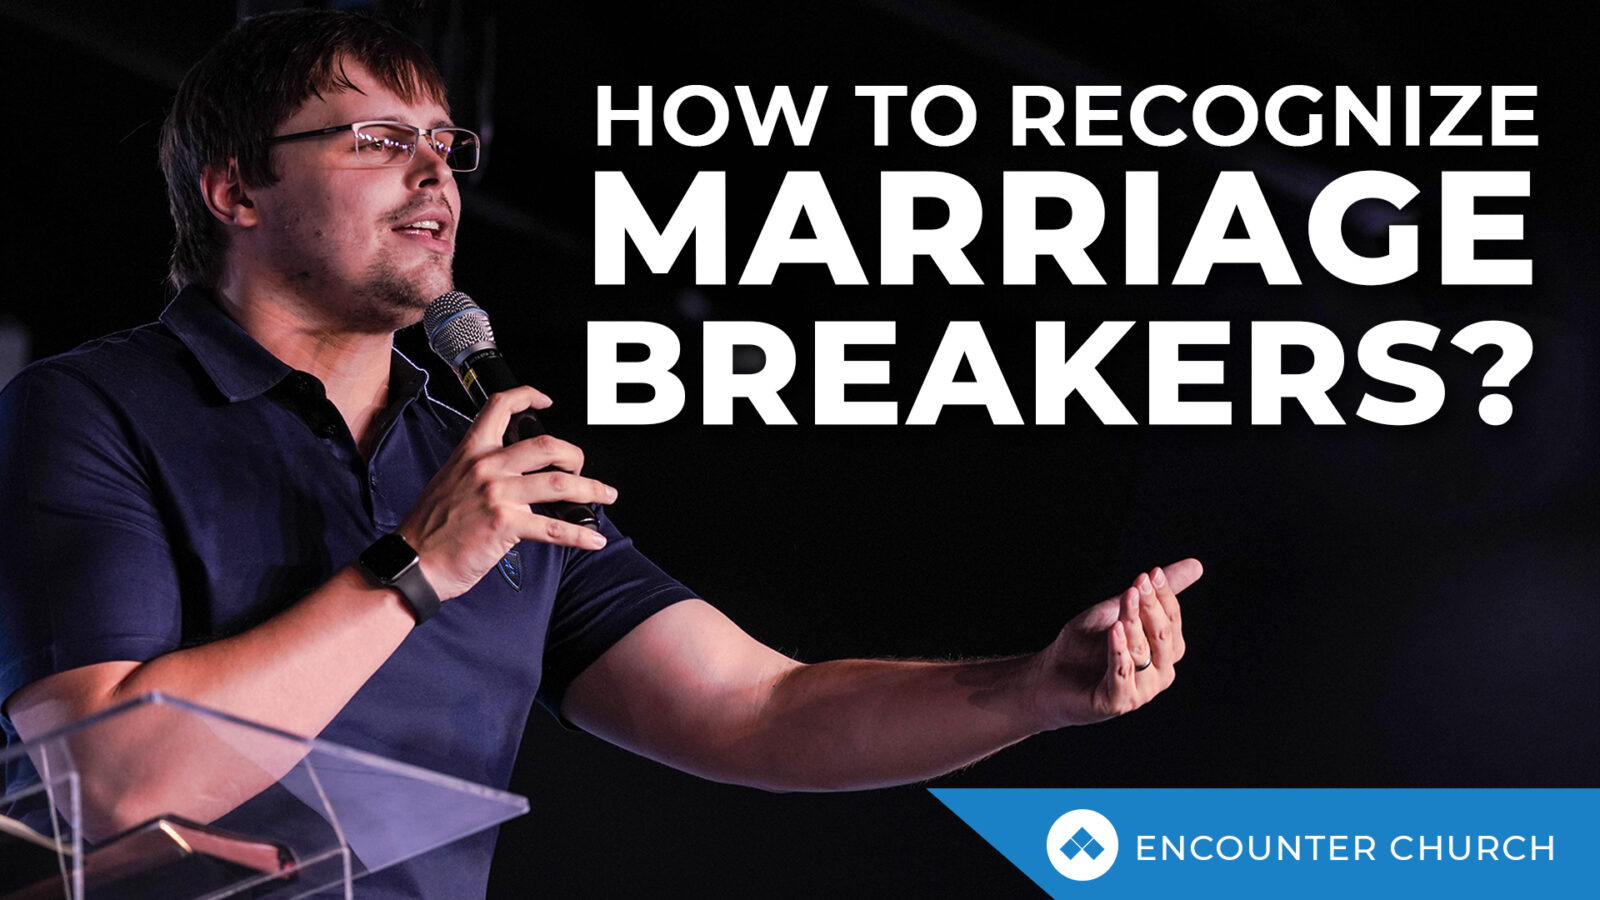 How To Recognize Marriage Breakers